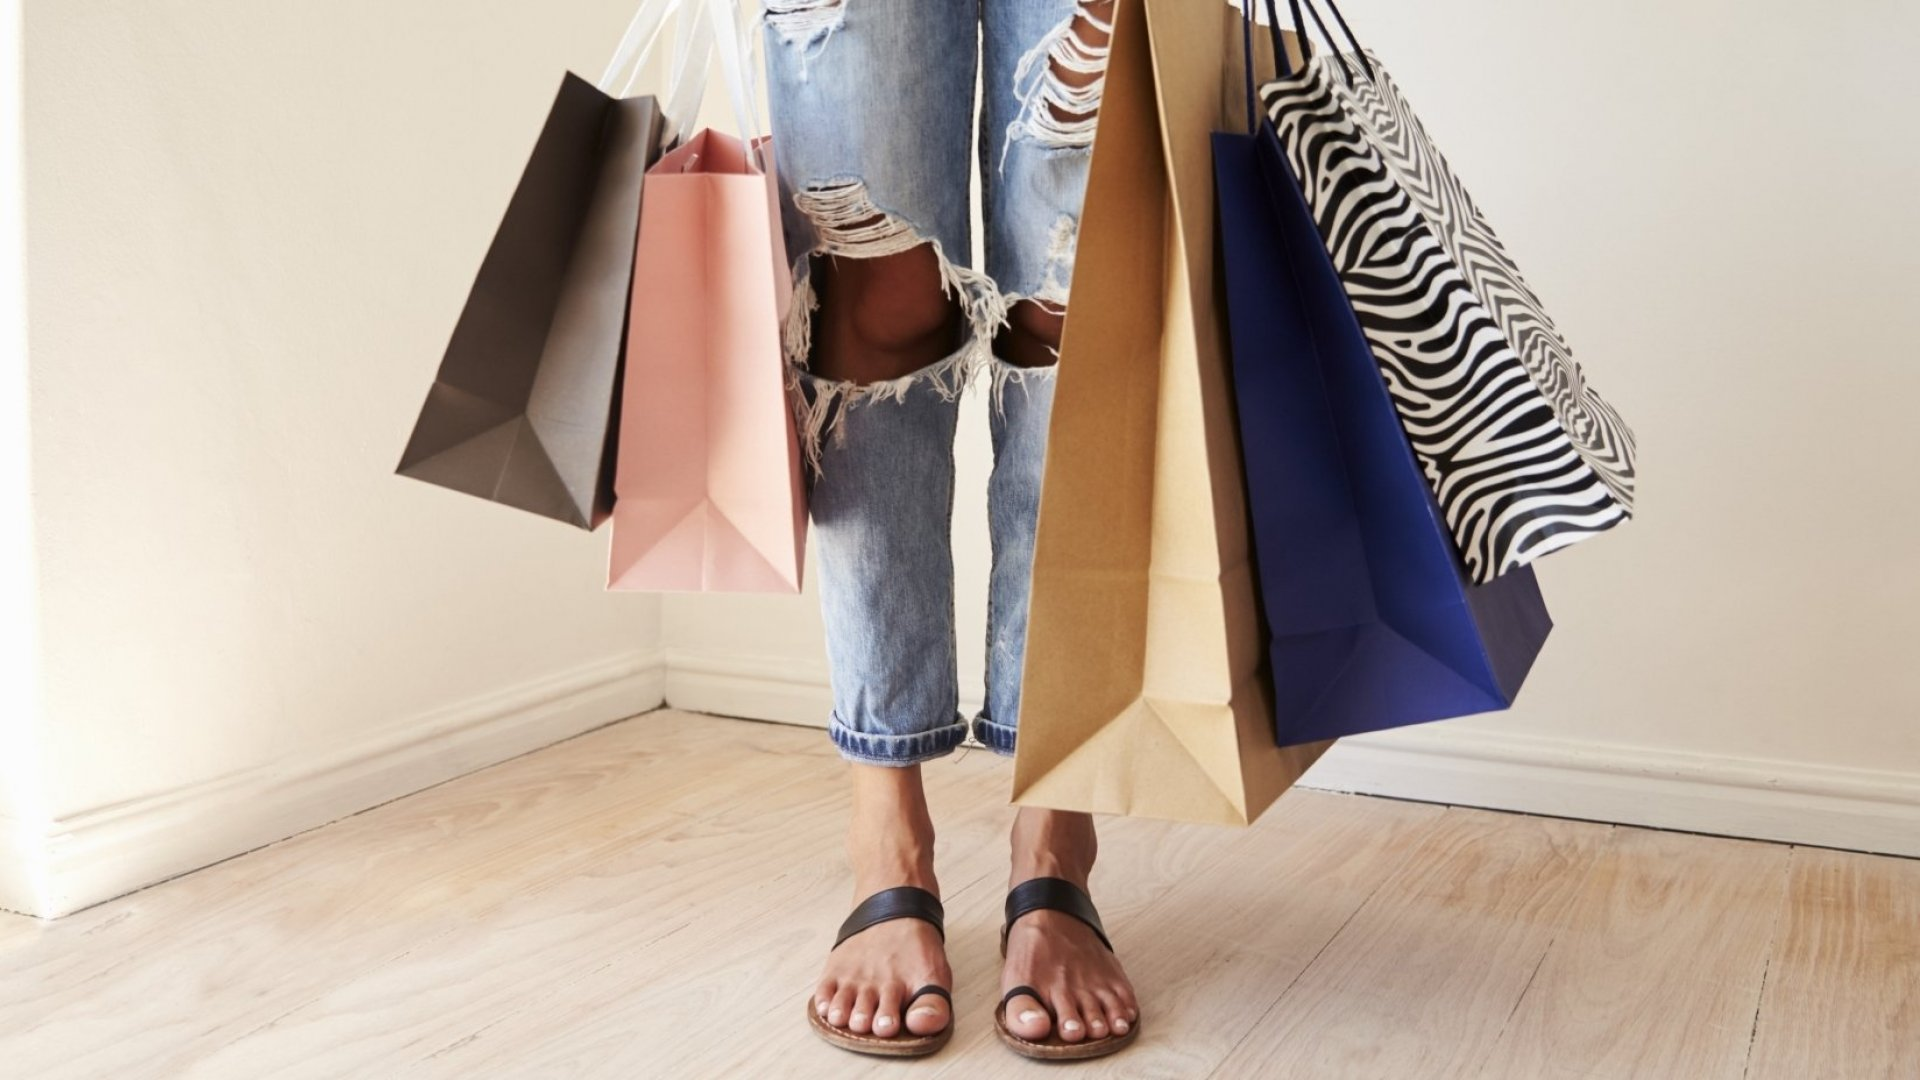 6 Ways Millennials Can Budget for the Holidays